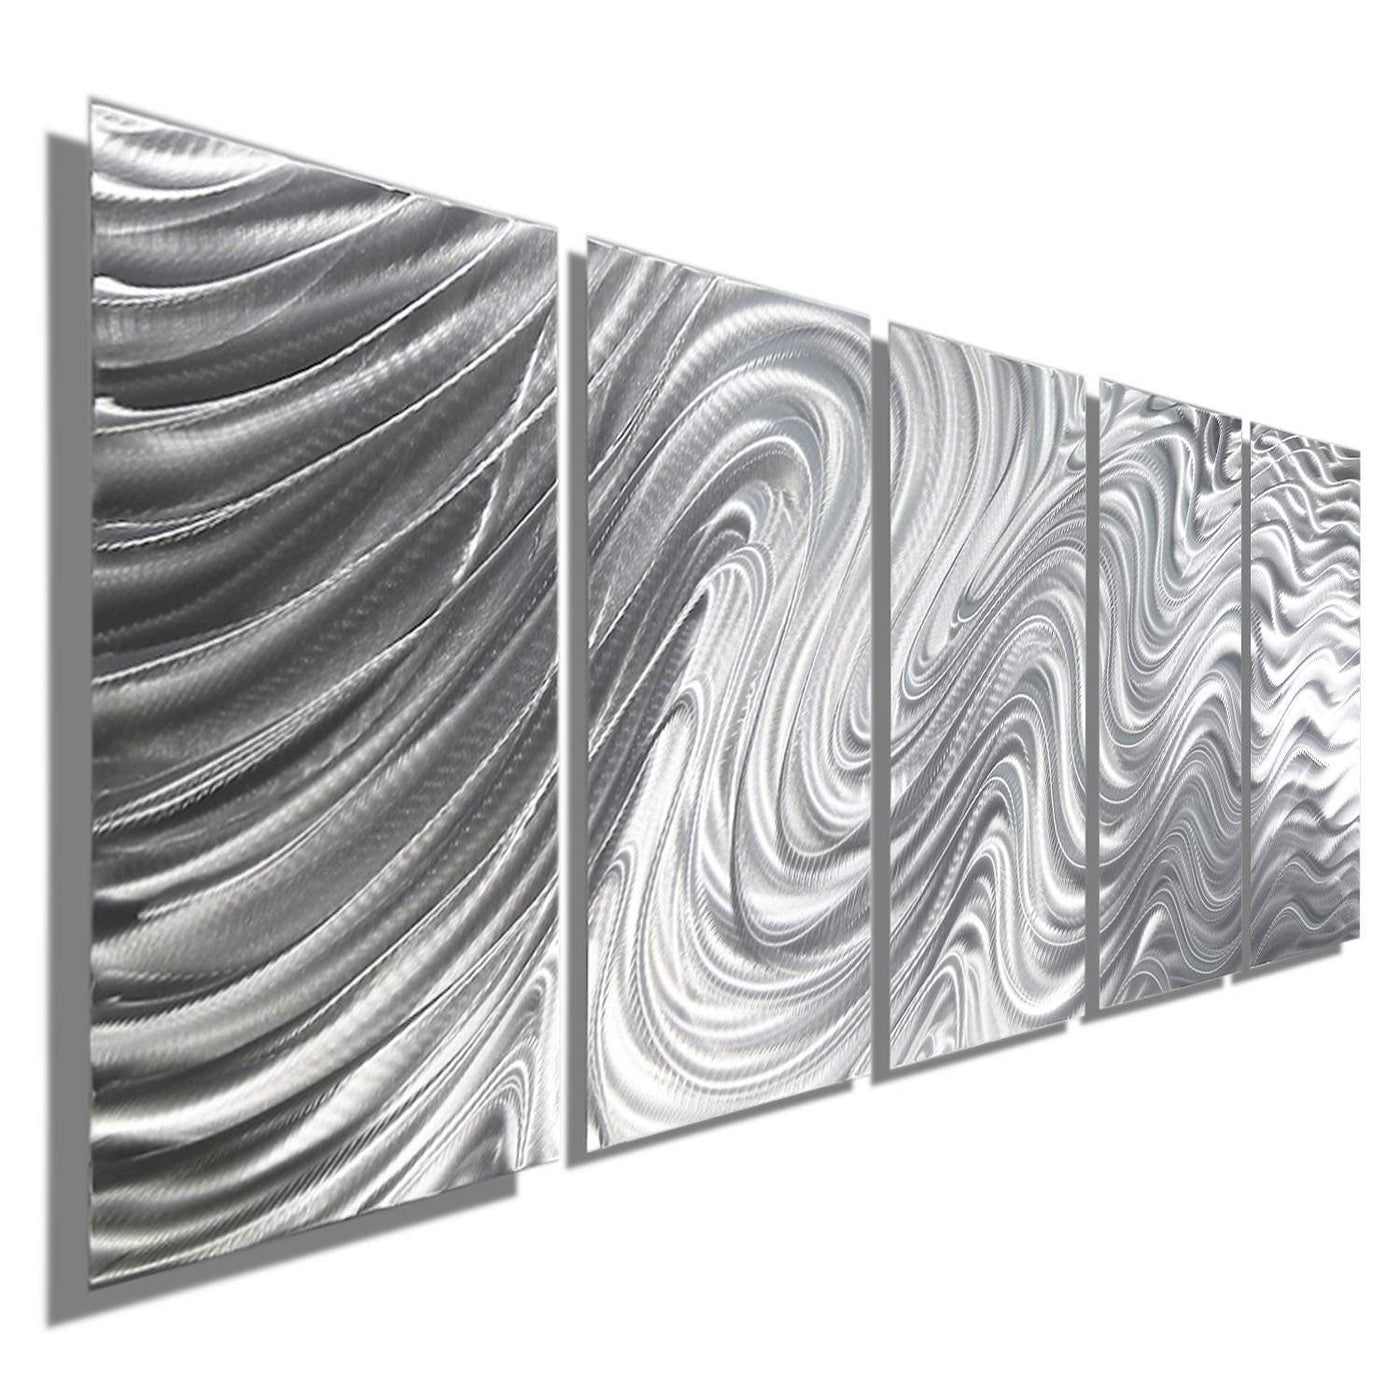 Statements2000 By Jon Allen Metal Wall Art Indoor Outdoor Sculptures